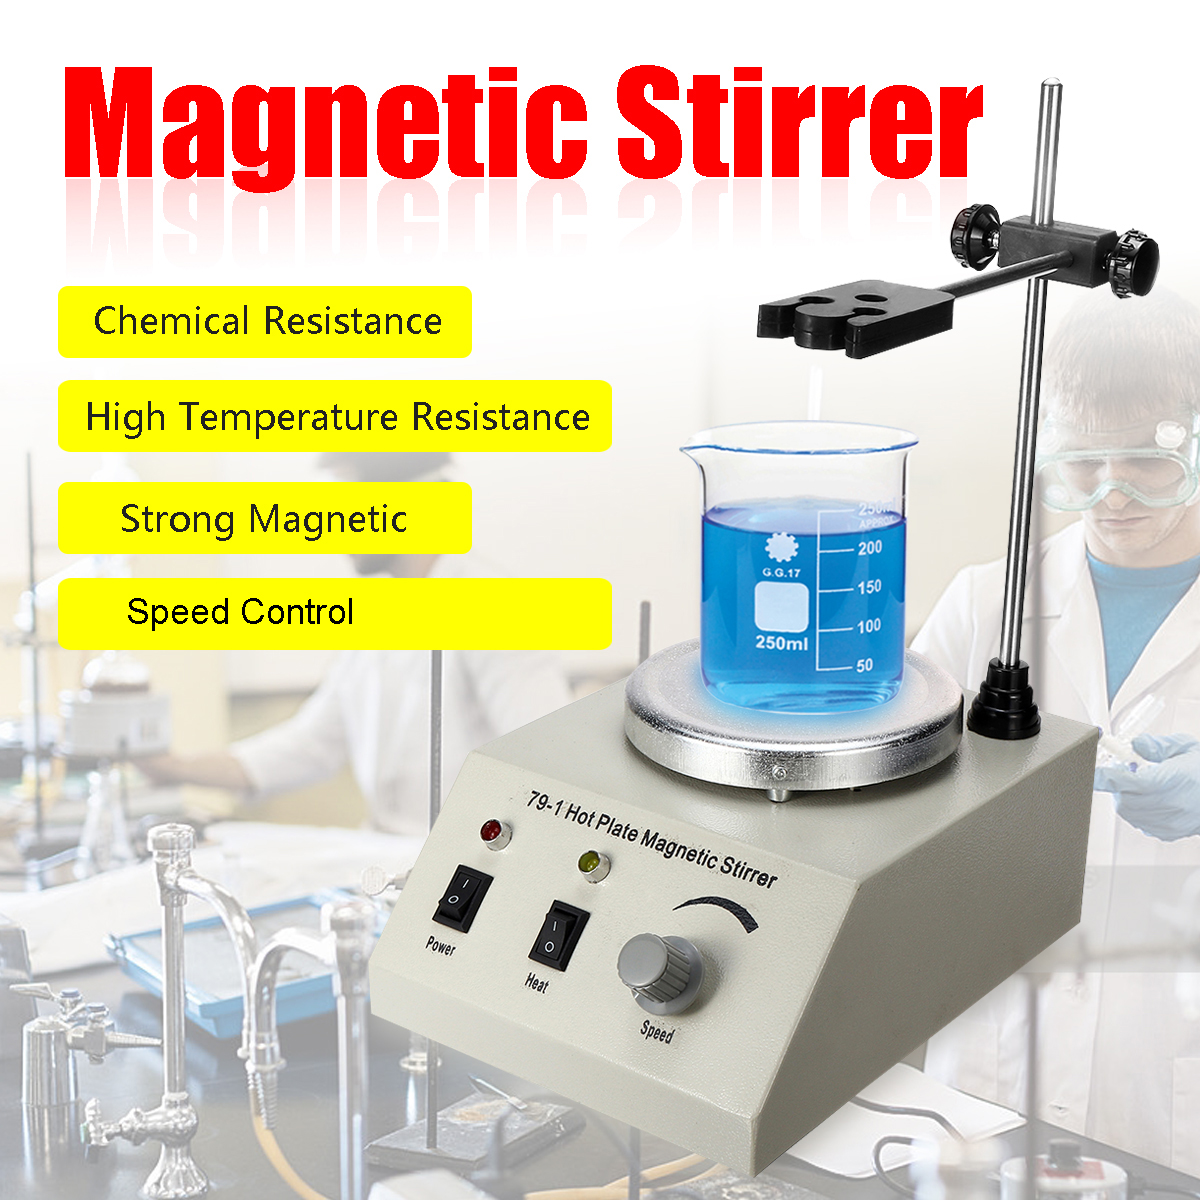 79-1 1000ml Hot Plate Magnetic Stirrer Lab Speed variable control Mixer 110/220V No Noise No Vibration US/EU/AU Plug Smooth Run79-1 1000ml Hot Plate Magnetic Stirrer Lab Speed variable control Mixer 110/220V No Noise No Vibration US/EU/AU Plug Smooth Run